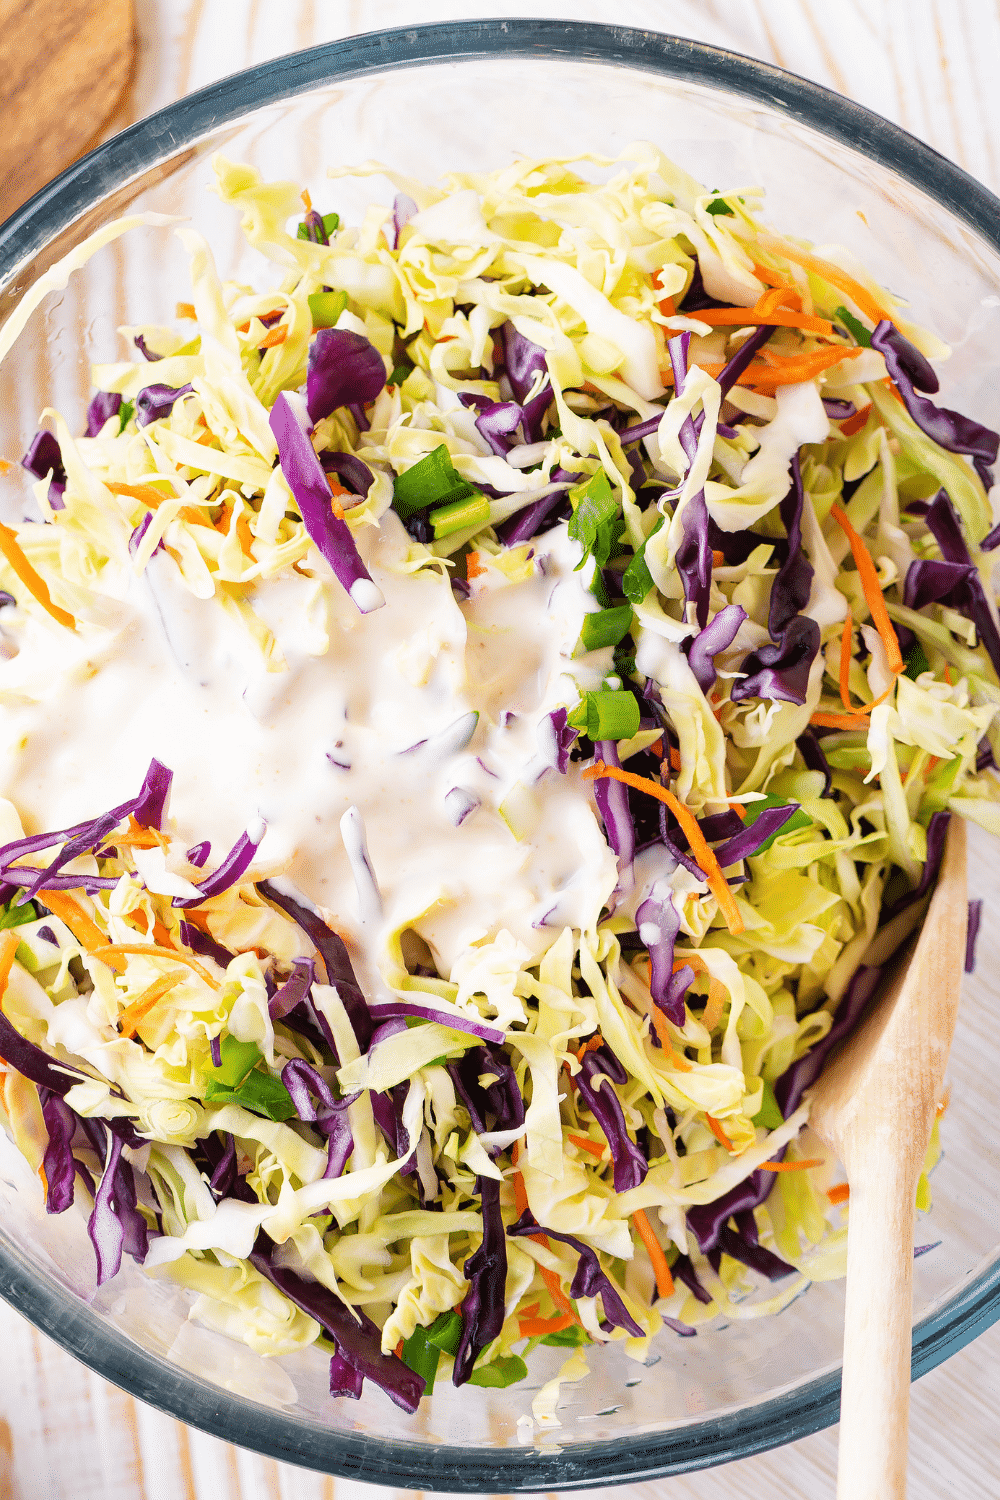 A glass bowl filled with coleslaw mix with coleslaw dressing on top.